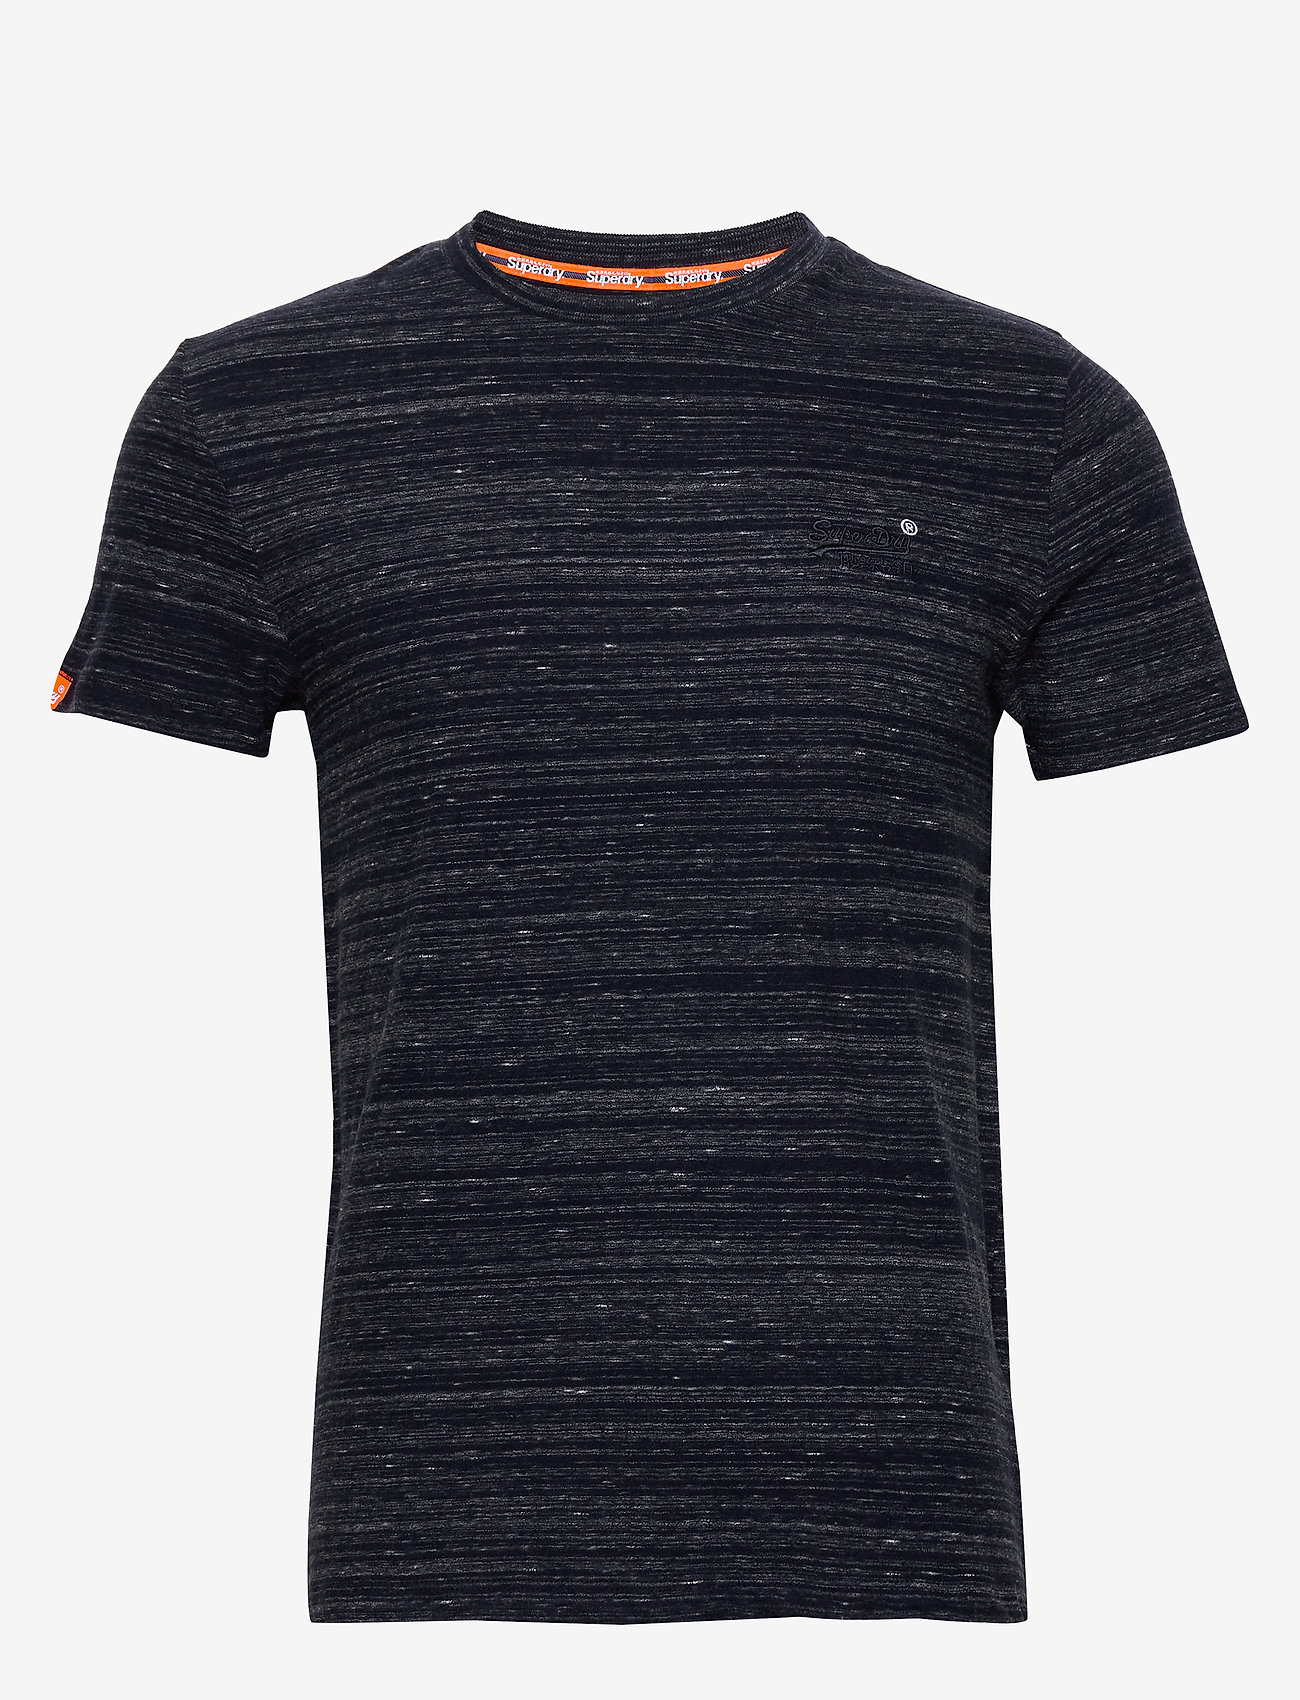 Superdry Ol Vintage Embroidery Tee - T-shirts MIDNIGHT NAVY SPACE DYE wJneXEsm